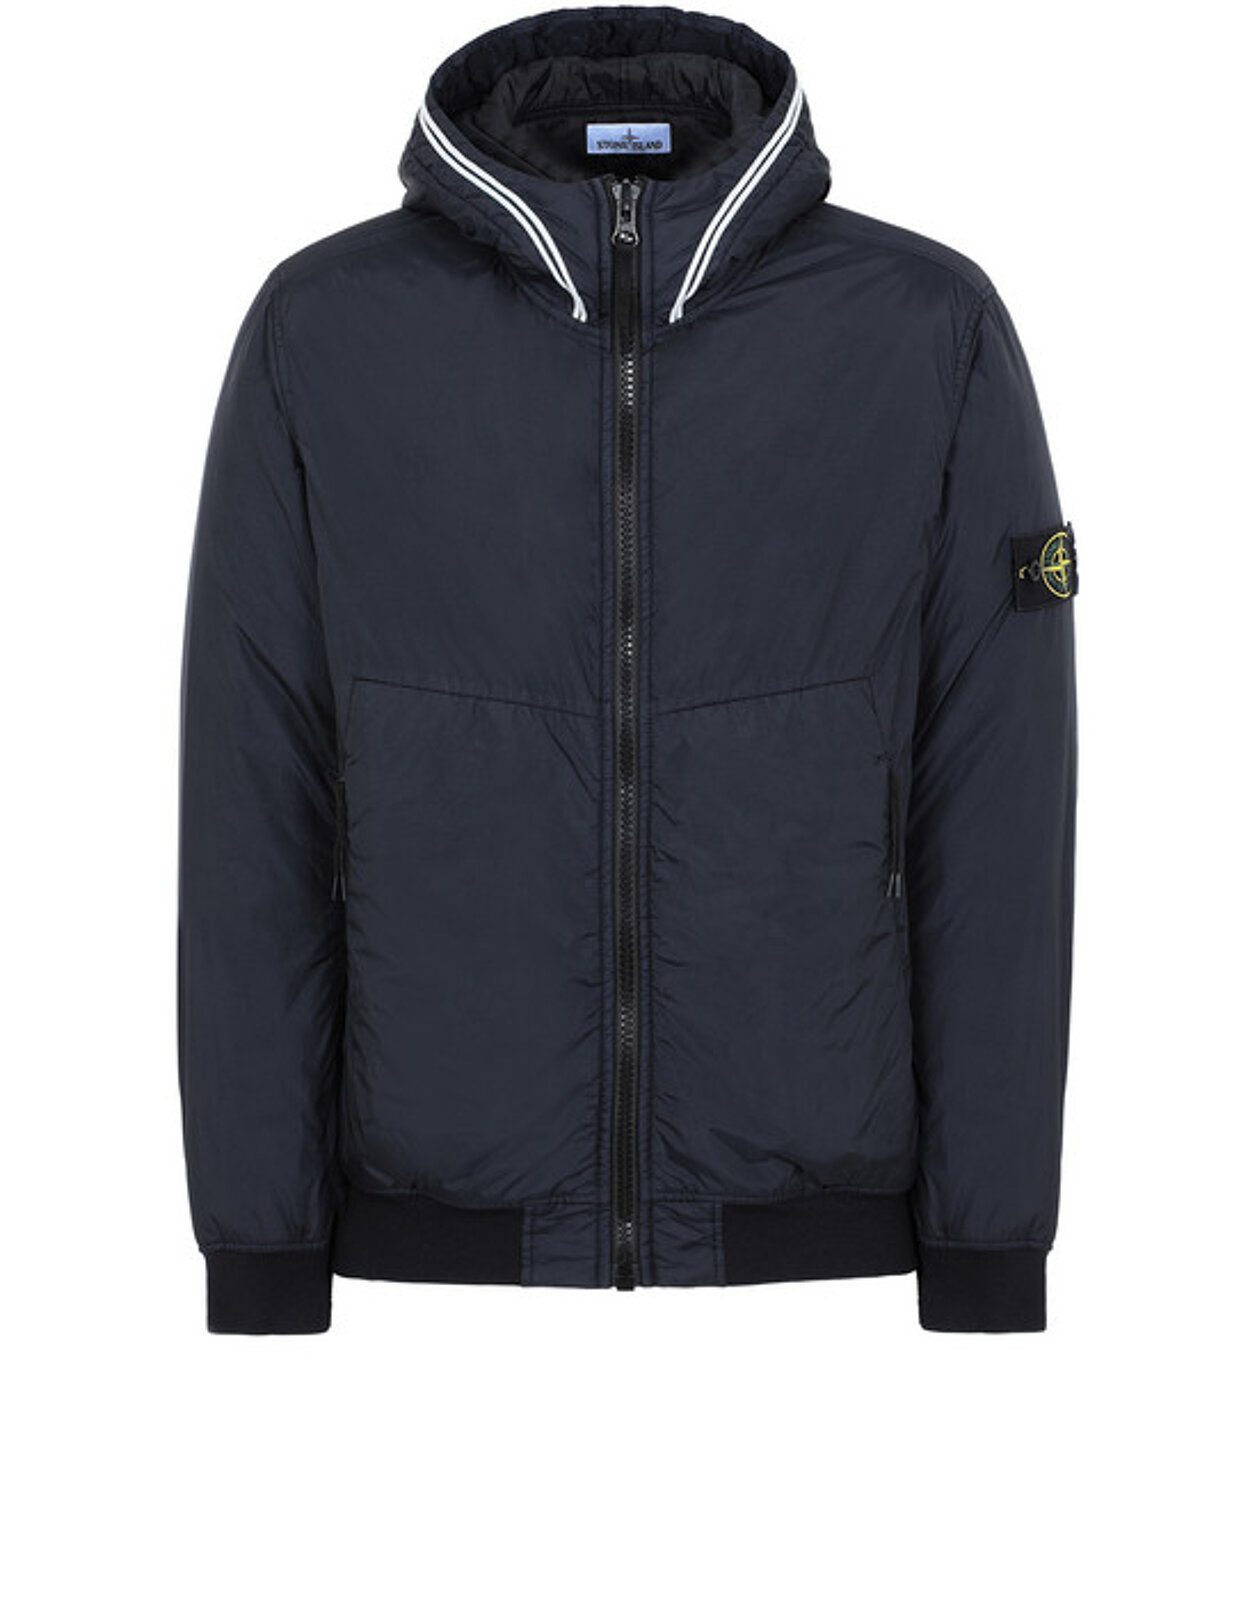 Garment Dyed Crinkle Reps Ny Con Primaloft®-Tc - Stone Island